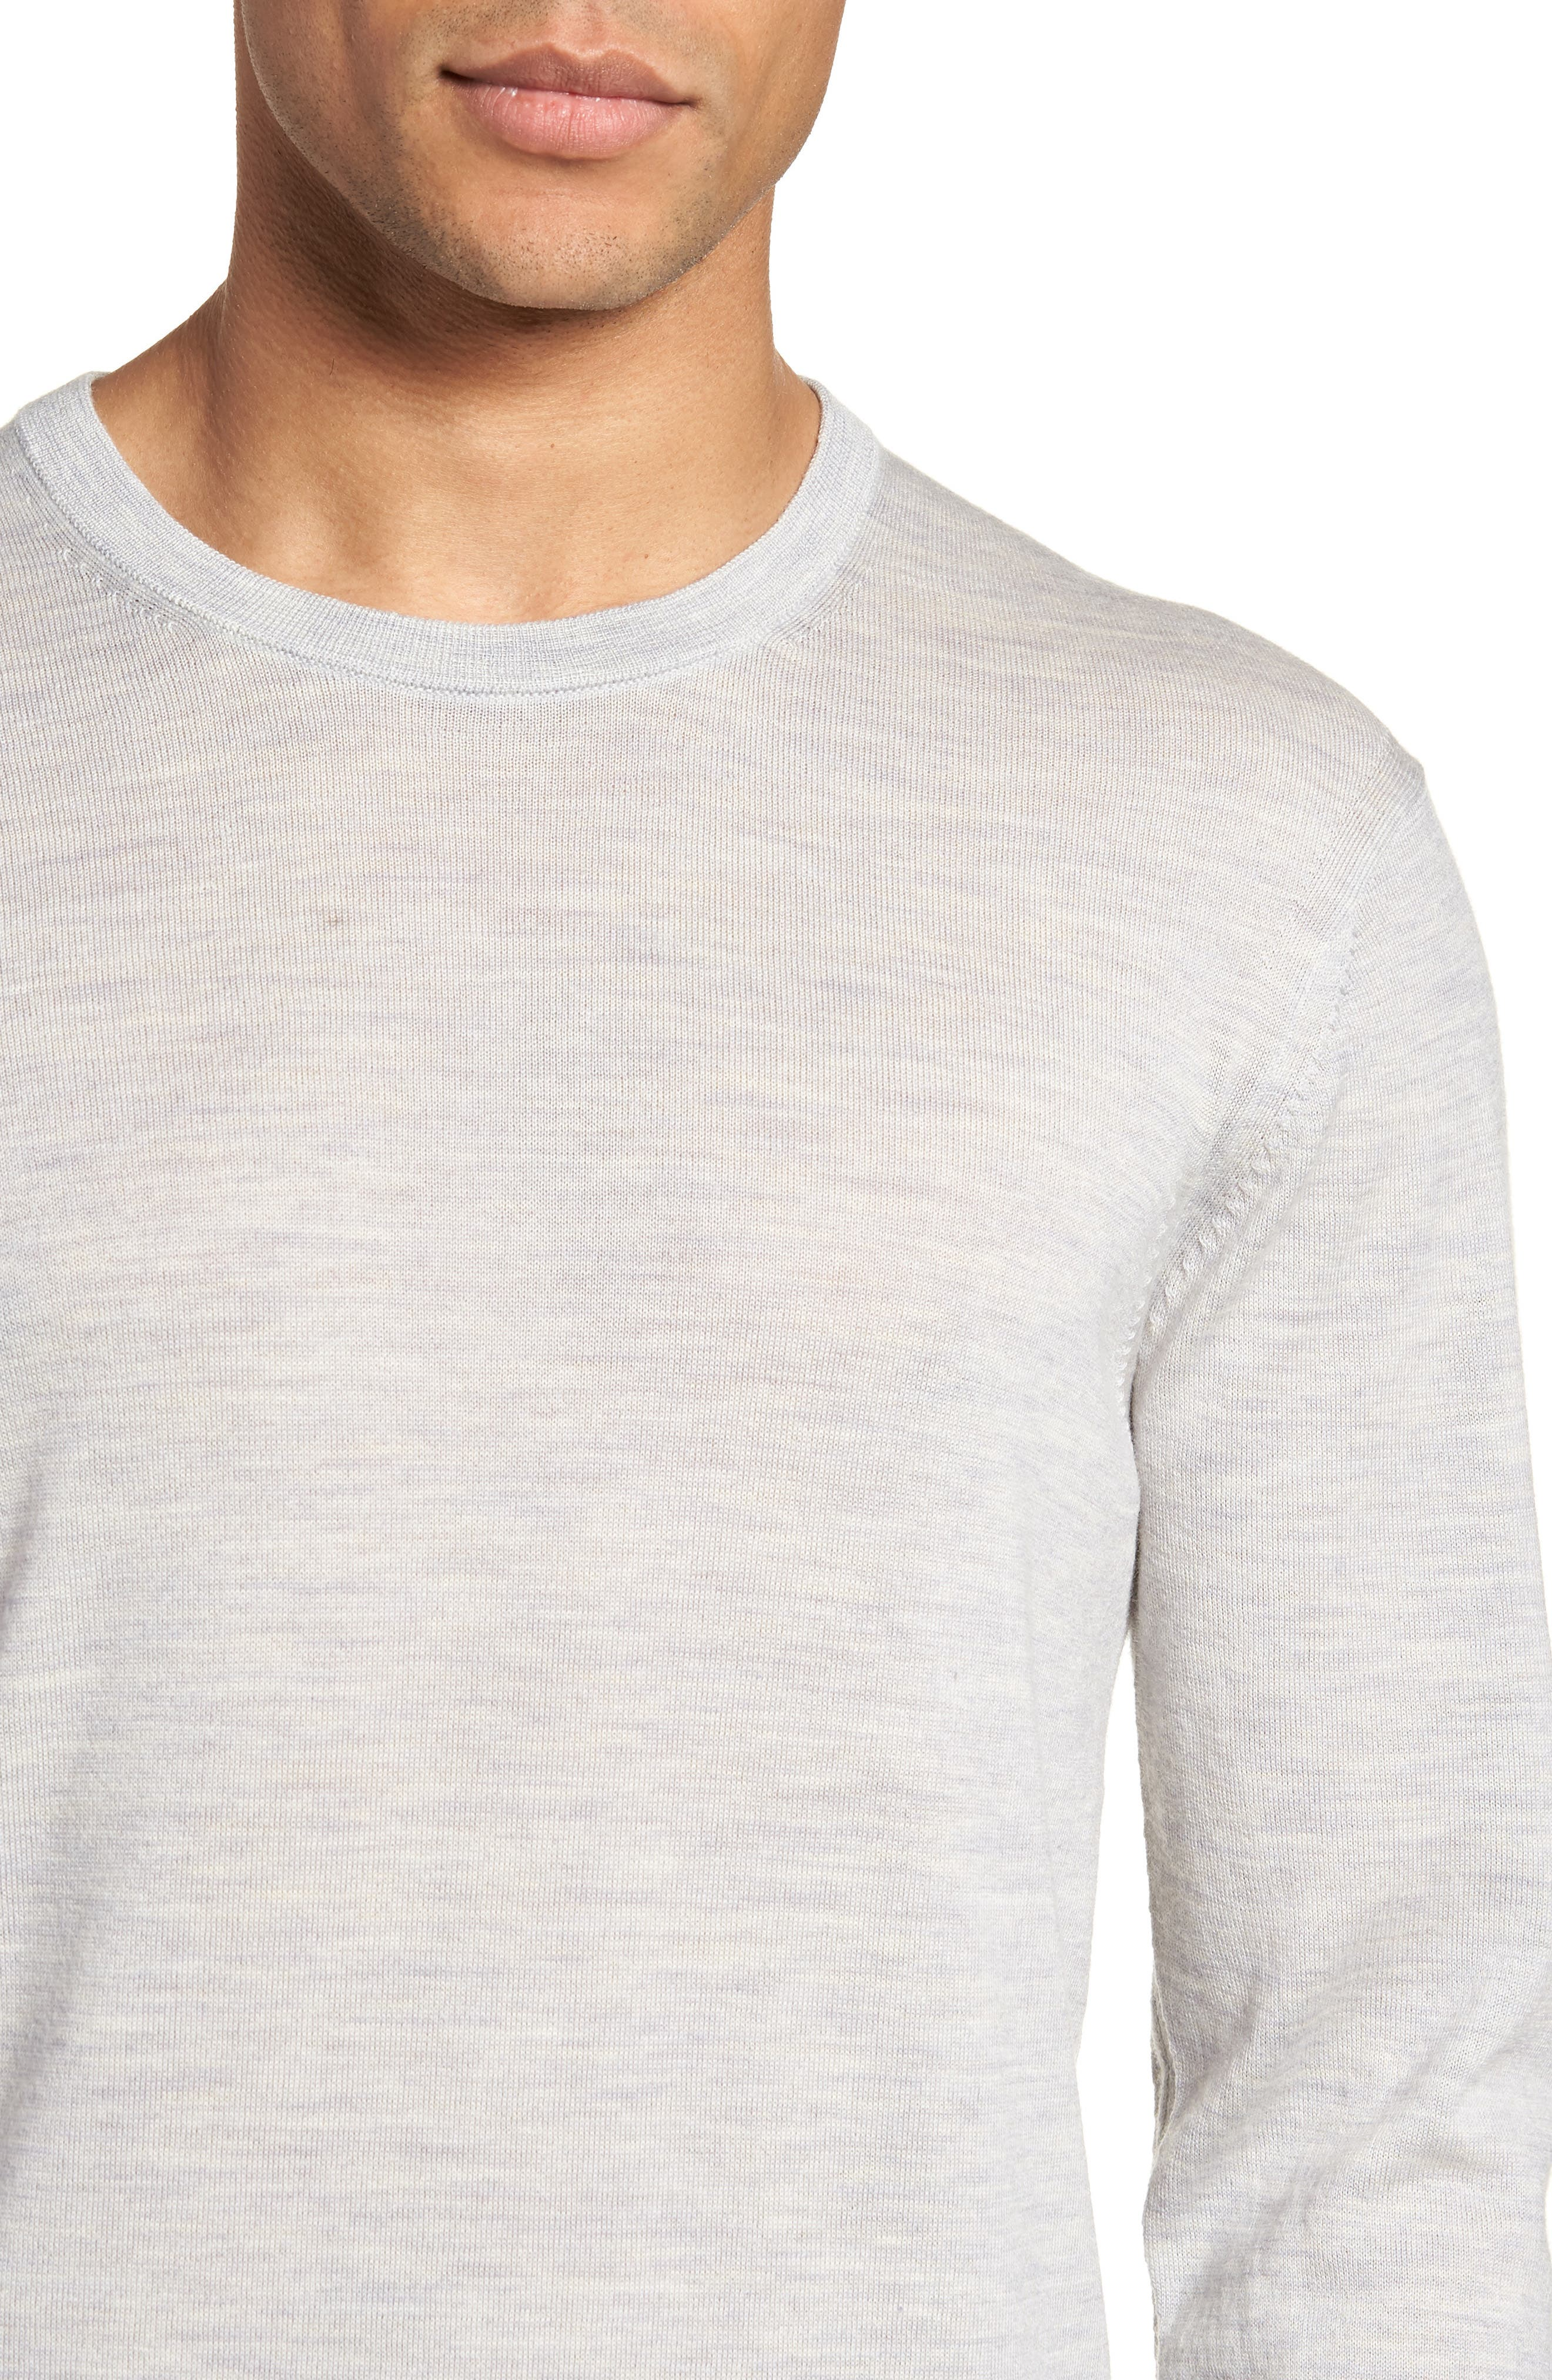 Lang Crewneck Wool Sweater,                             Alternate thumbnail 4, color,                             Light Grey Marl